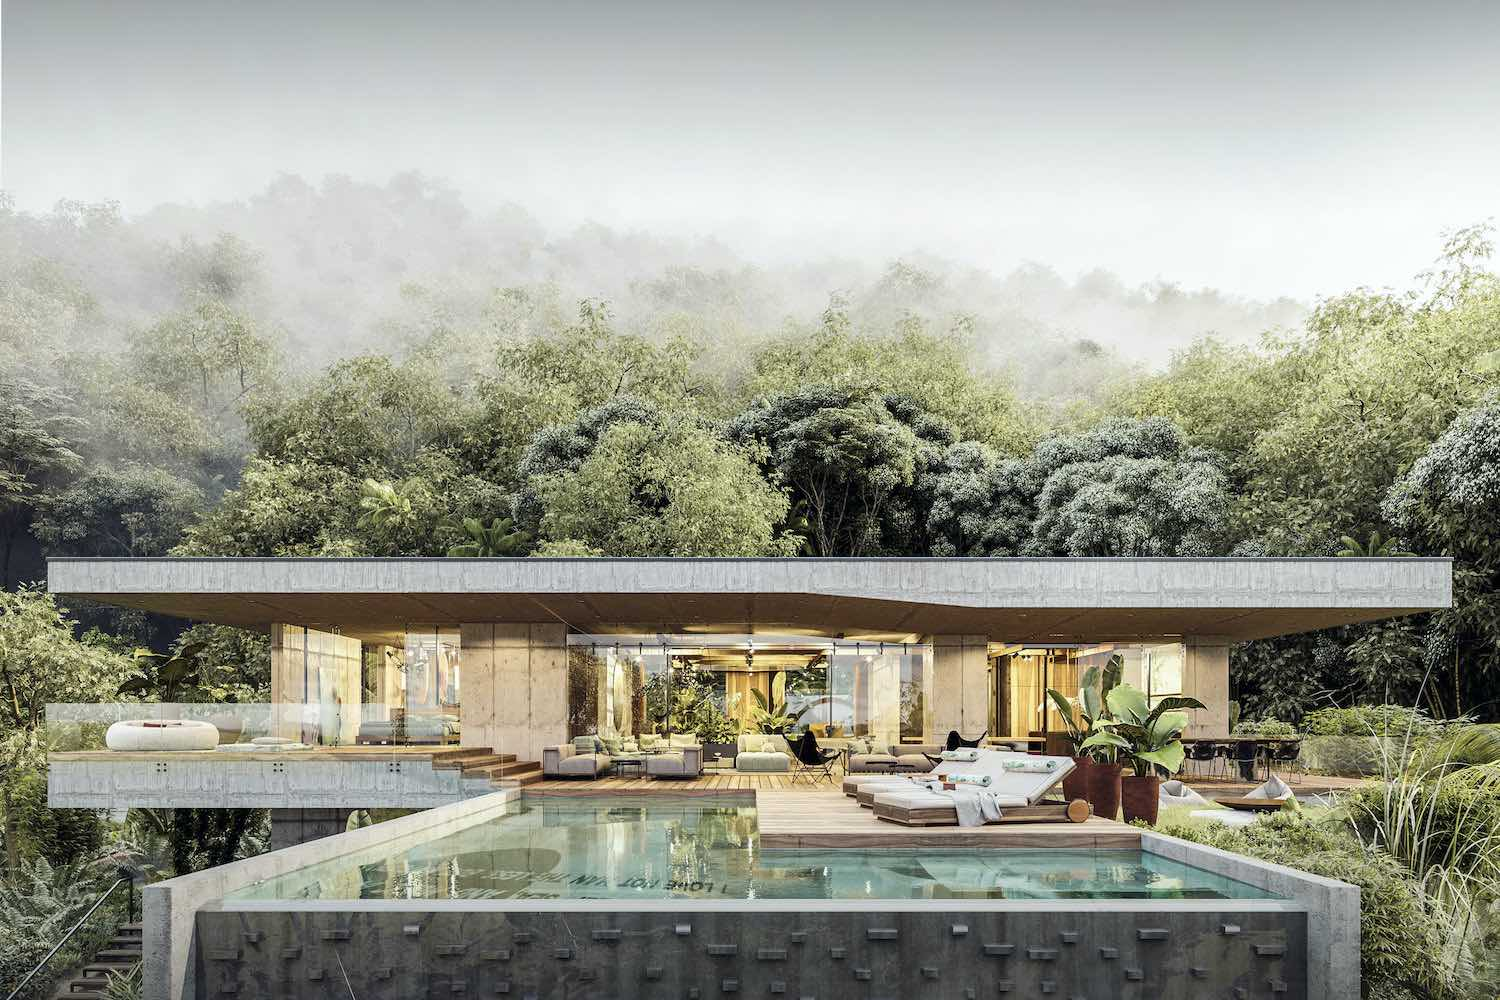 a resort villa in the middle of jungle